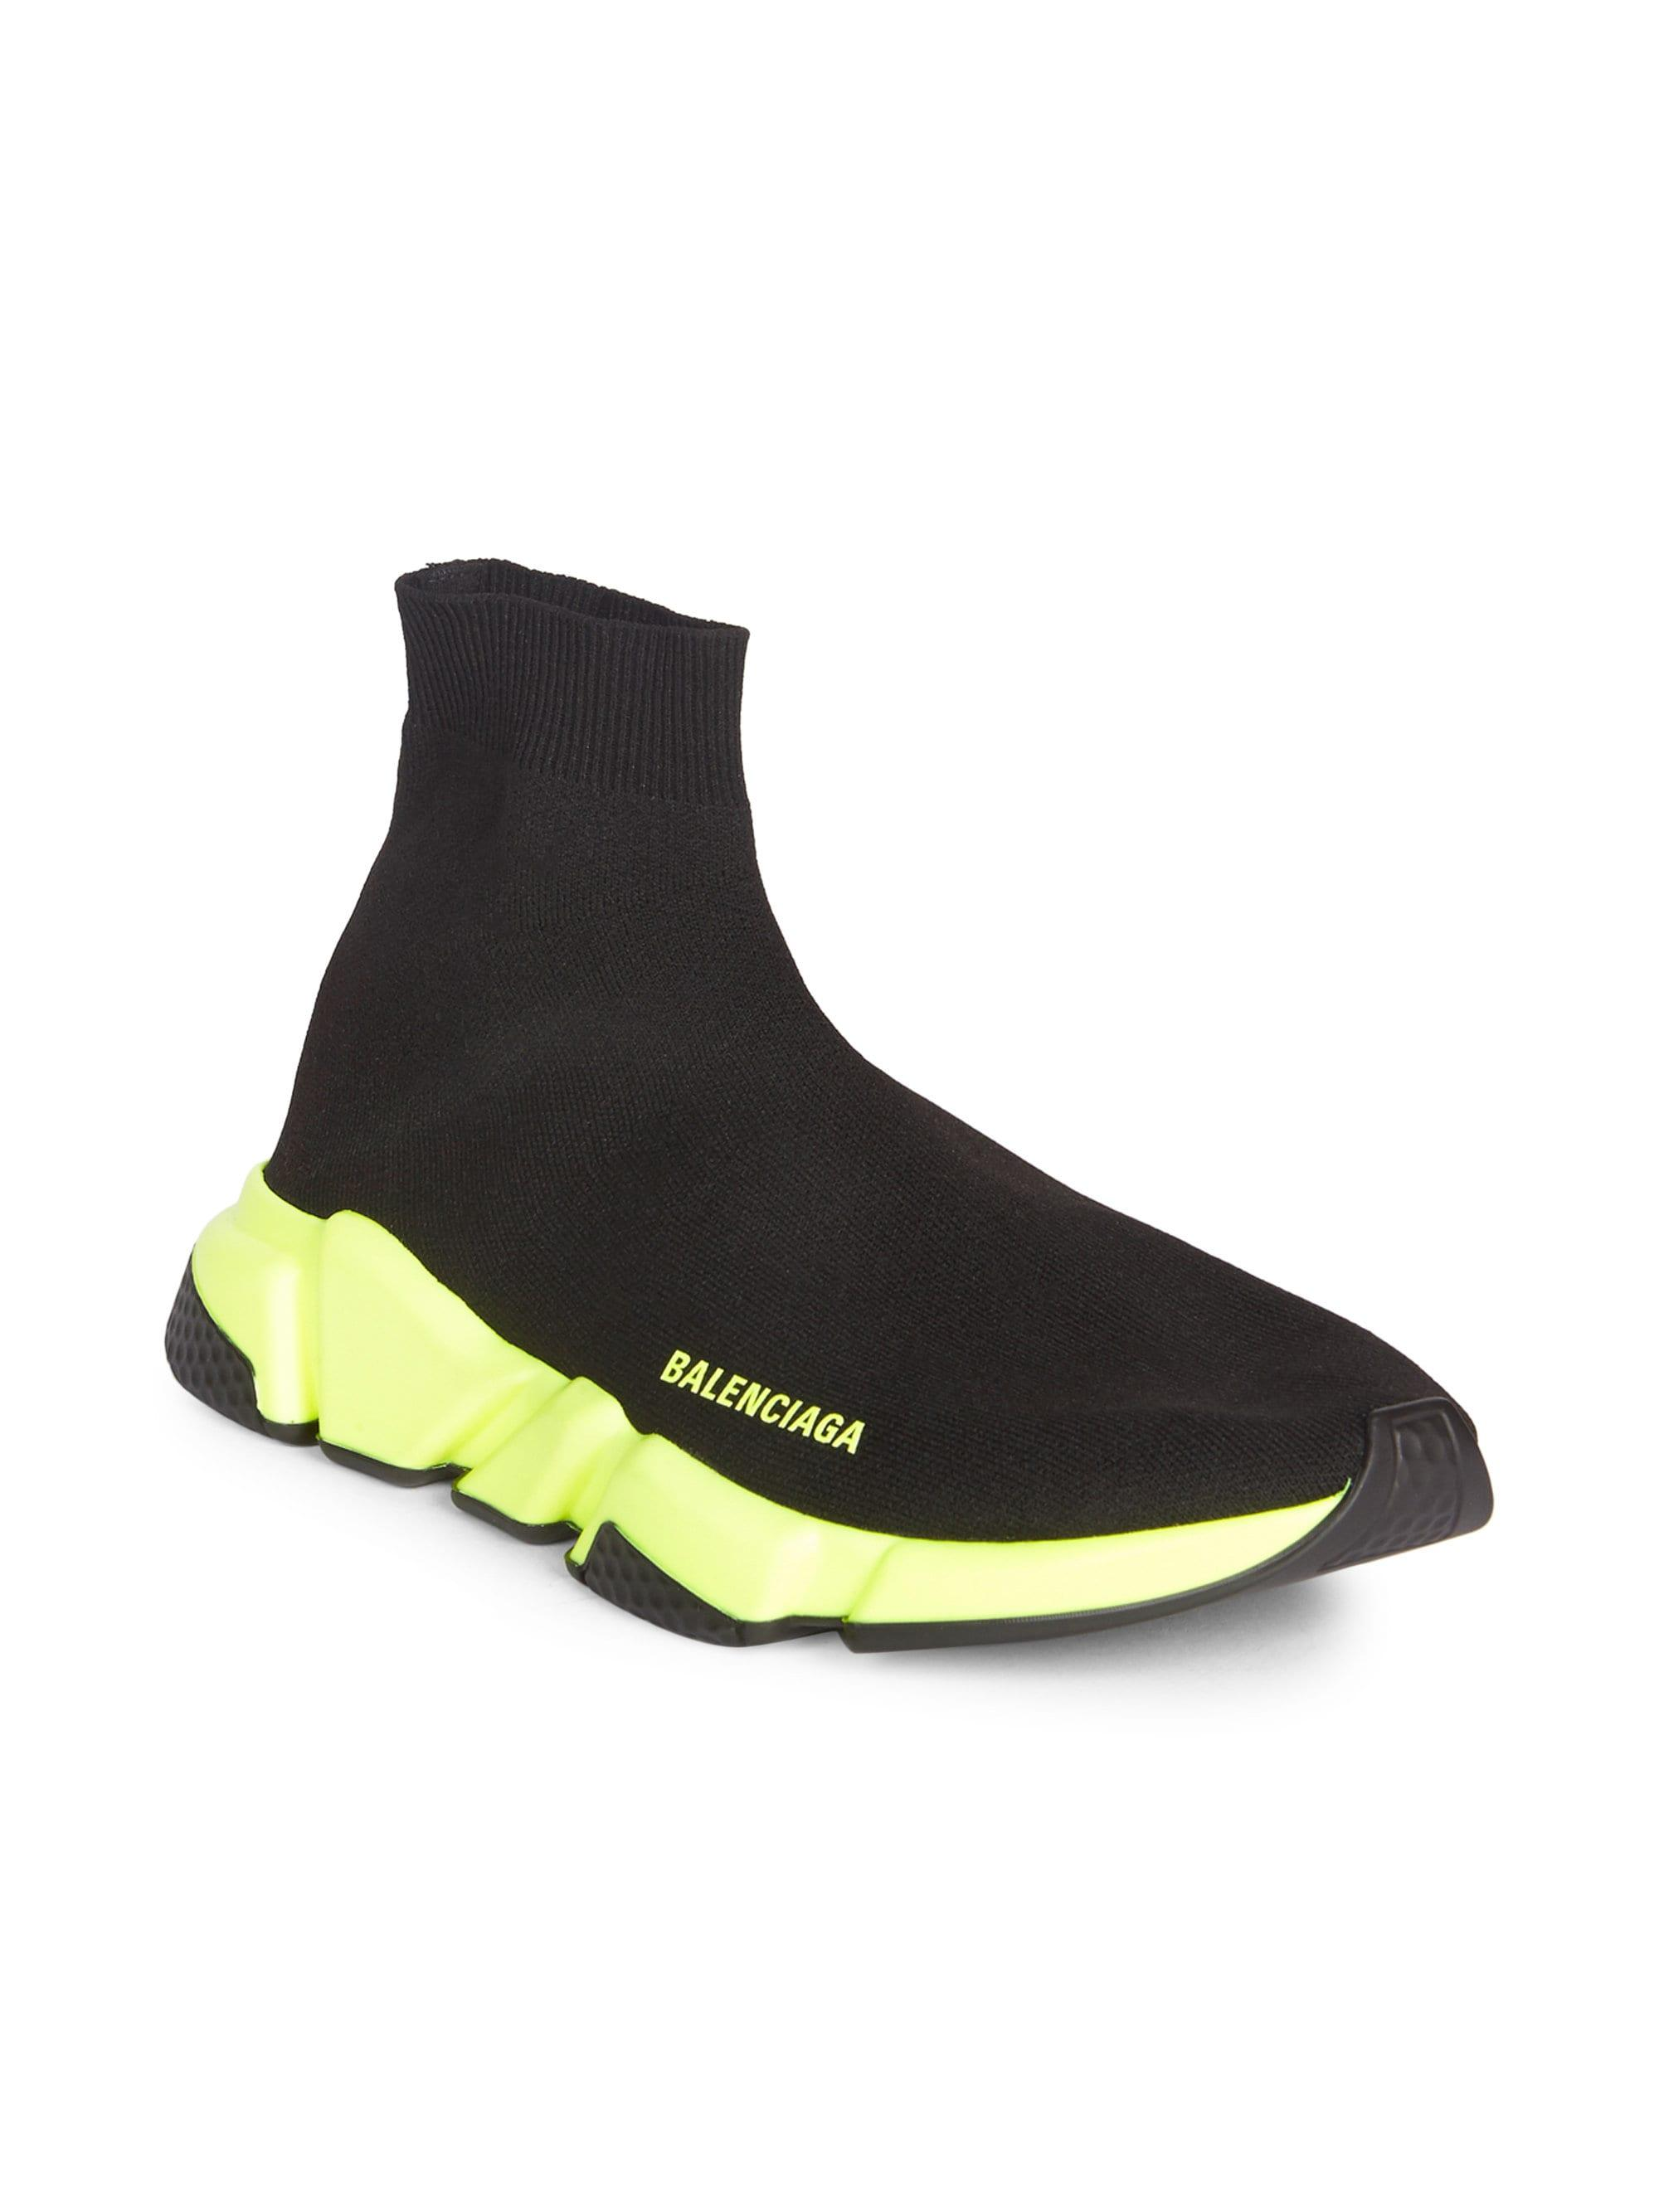 1df1d20d53798 Balenciaga Men s Speed Trainer Sock Sneakers - Black - Size 39 (6) E ...